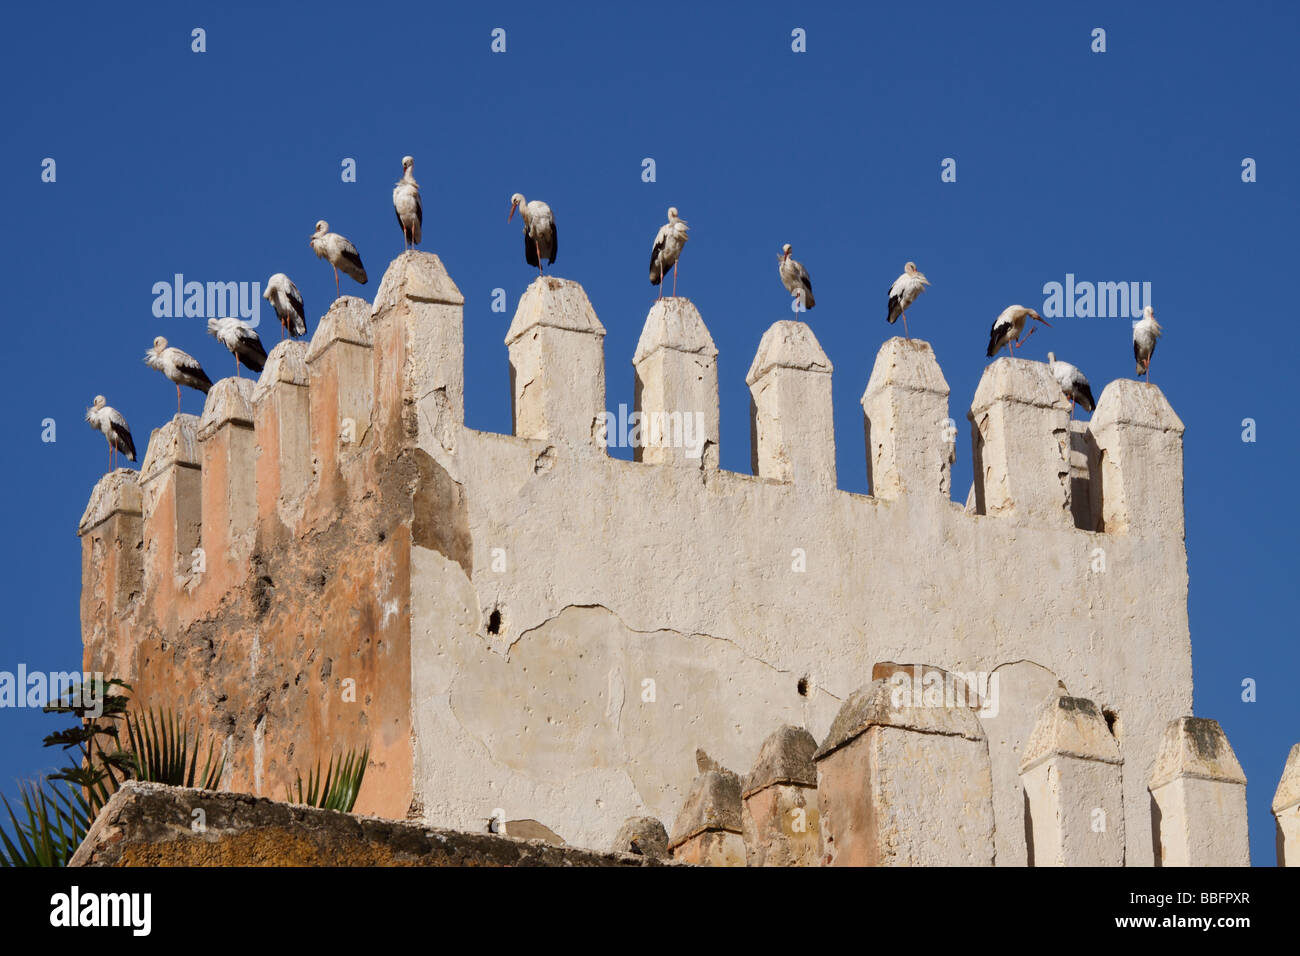 Africa, North Africa, Morocco, Fes, Fès el-Jdid, Petit Mechouar, Bab Makina, Fortress, Tower, Perched Birds - Stock Image